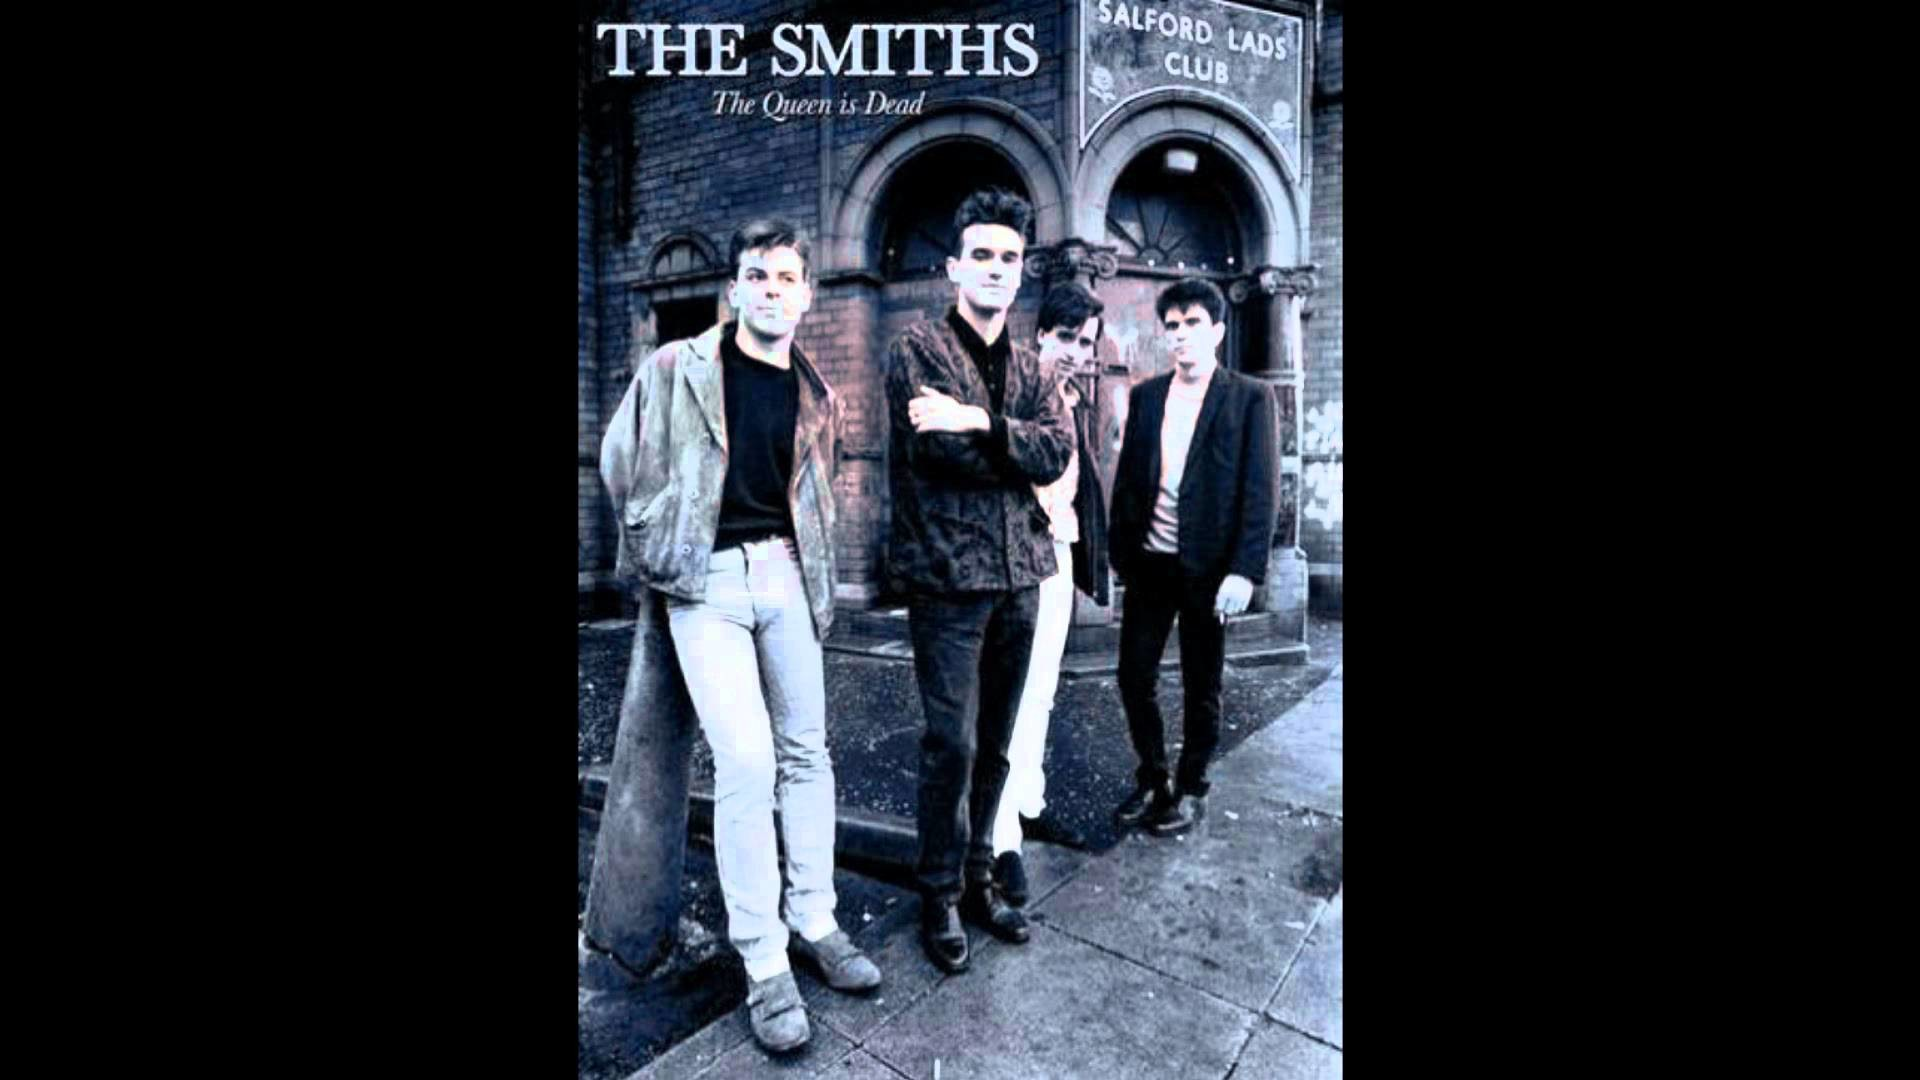 The Smiths Wallpaper 67 Images